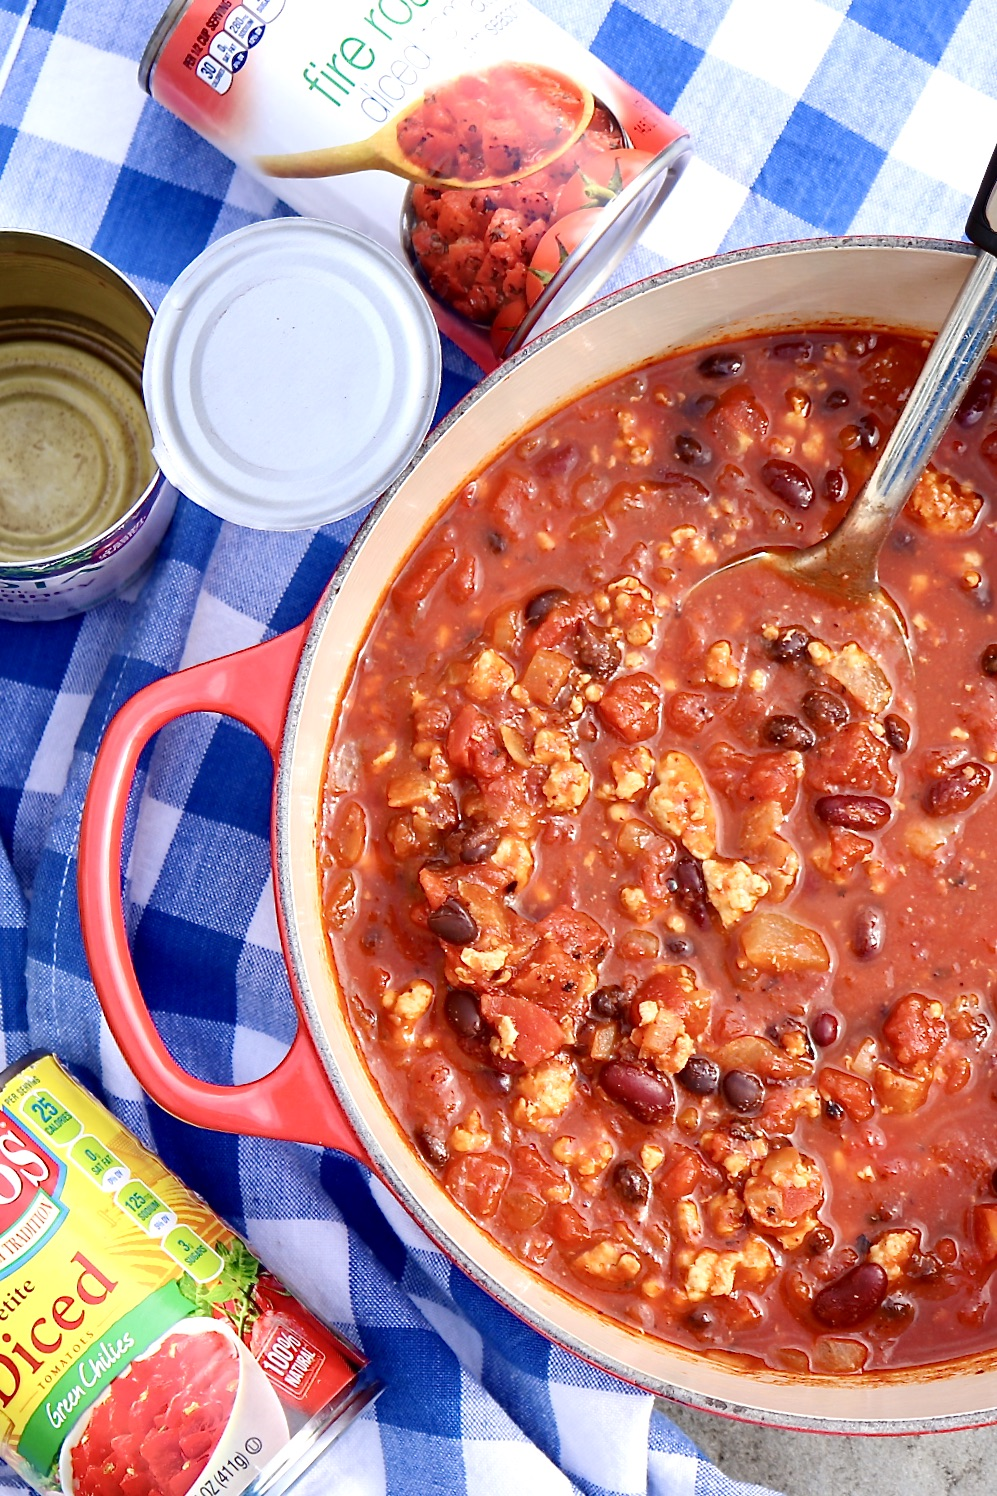 A great bowl of chili is just minutes away thanks to a handful of economical pantry ingredients. Top with a simple sprinkle of cheese or load it up with chopped avocado, crushed tortilla chips, minced onions, etc.